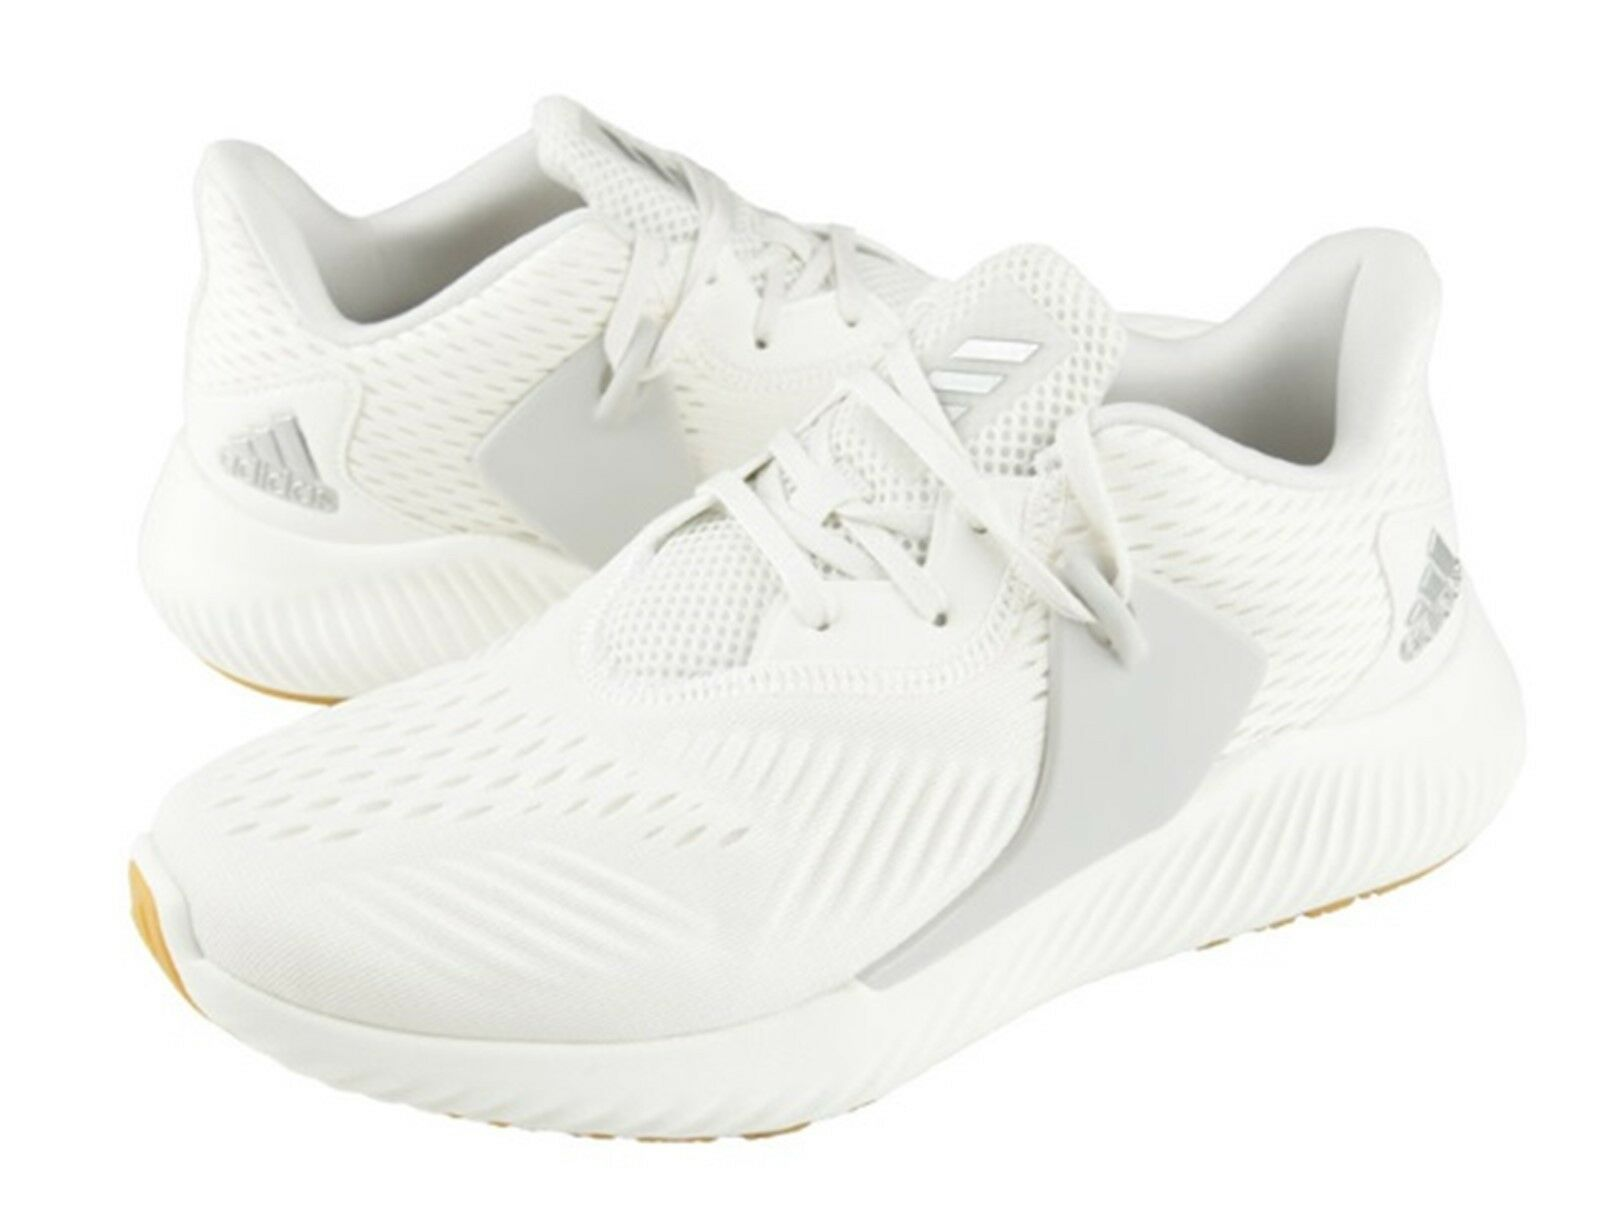 Adidas Women Alpha-bounce RC 2 shoes Running White Casual  Sneakers shoes BD7190  best choice